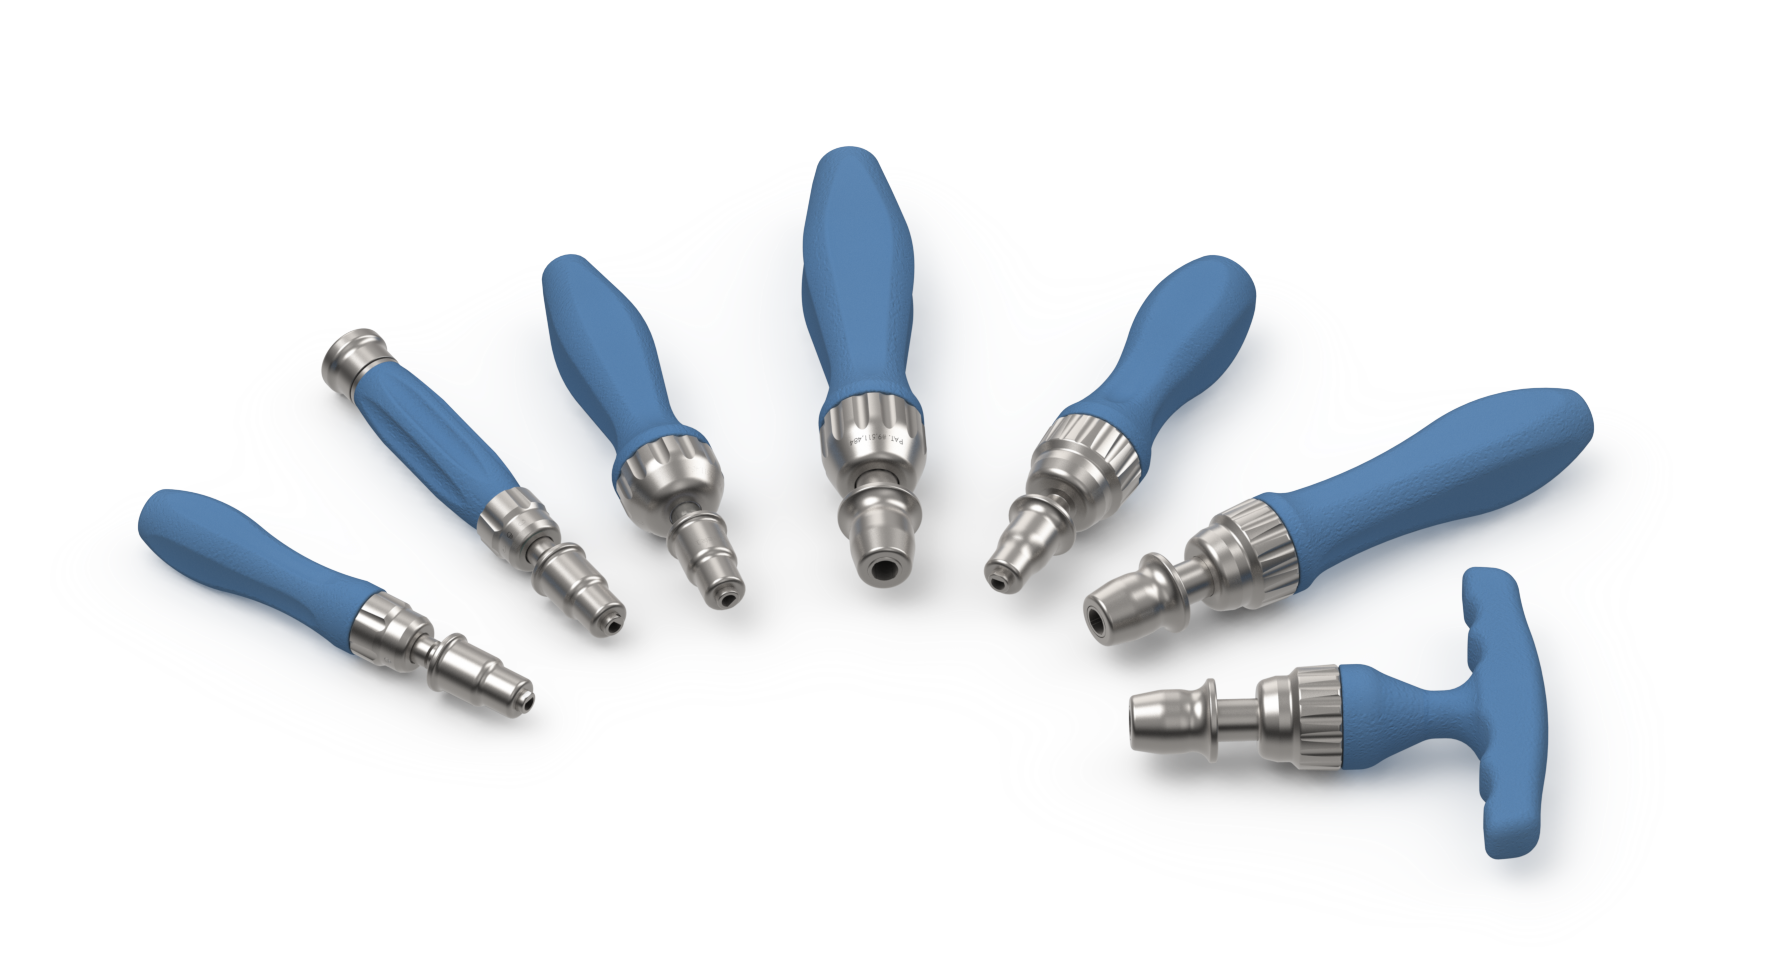 MedTorque Ratchet Drivers